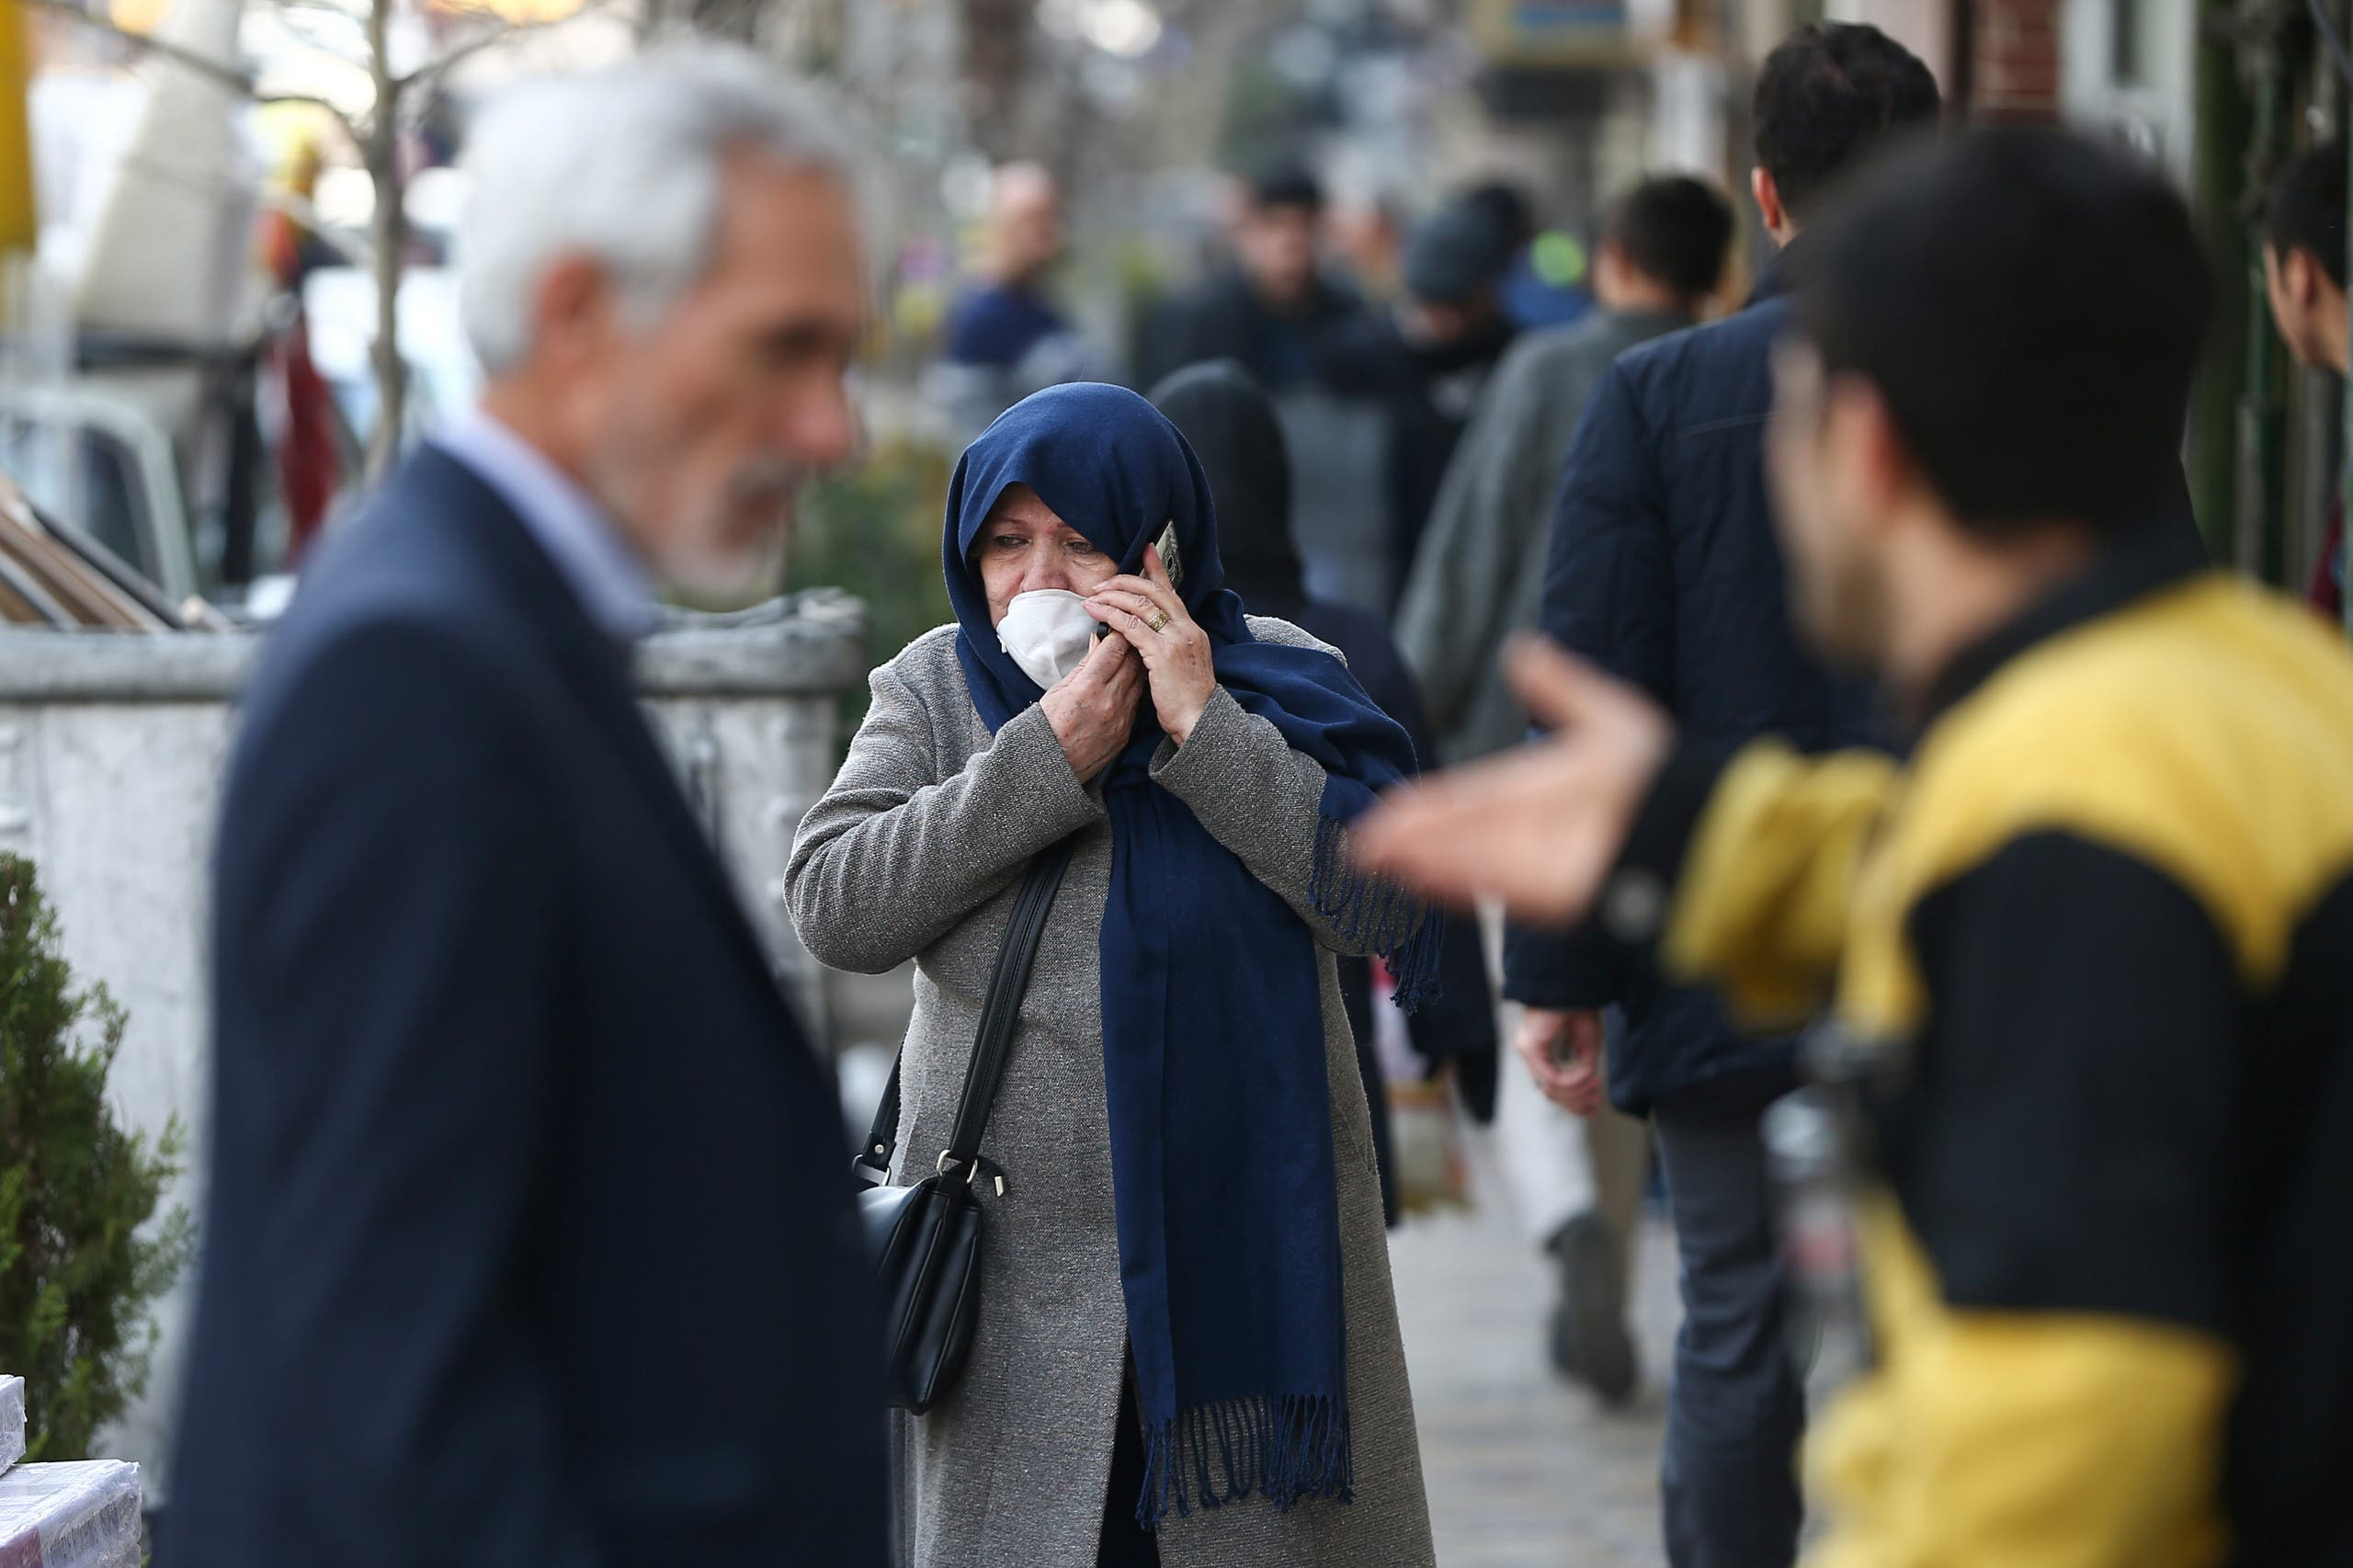 An Iranian woman wears a protective face mask, following the coronavirus outbreak, as she talks on the phone, in Tehran, Iran March 5, 2020. (Reuters)